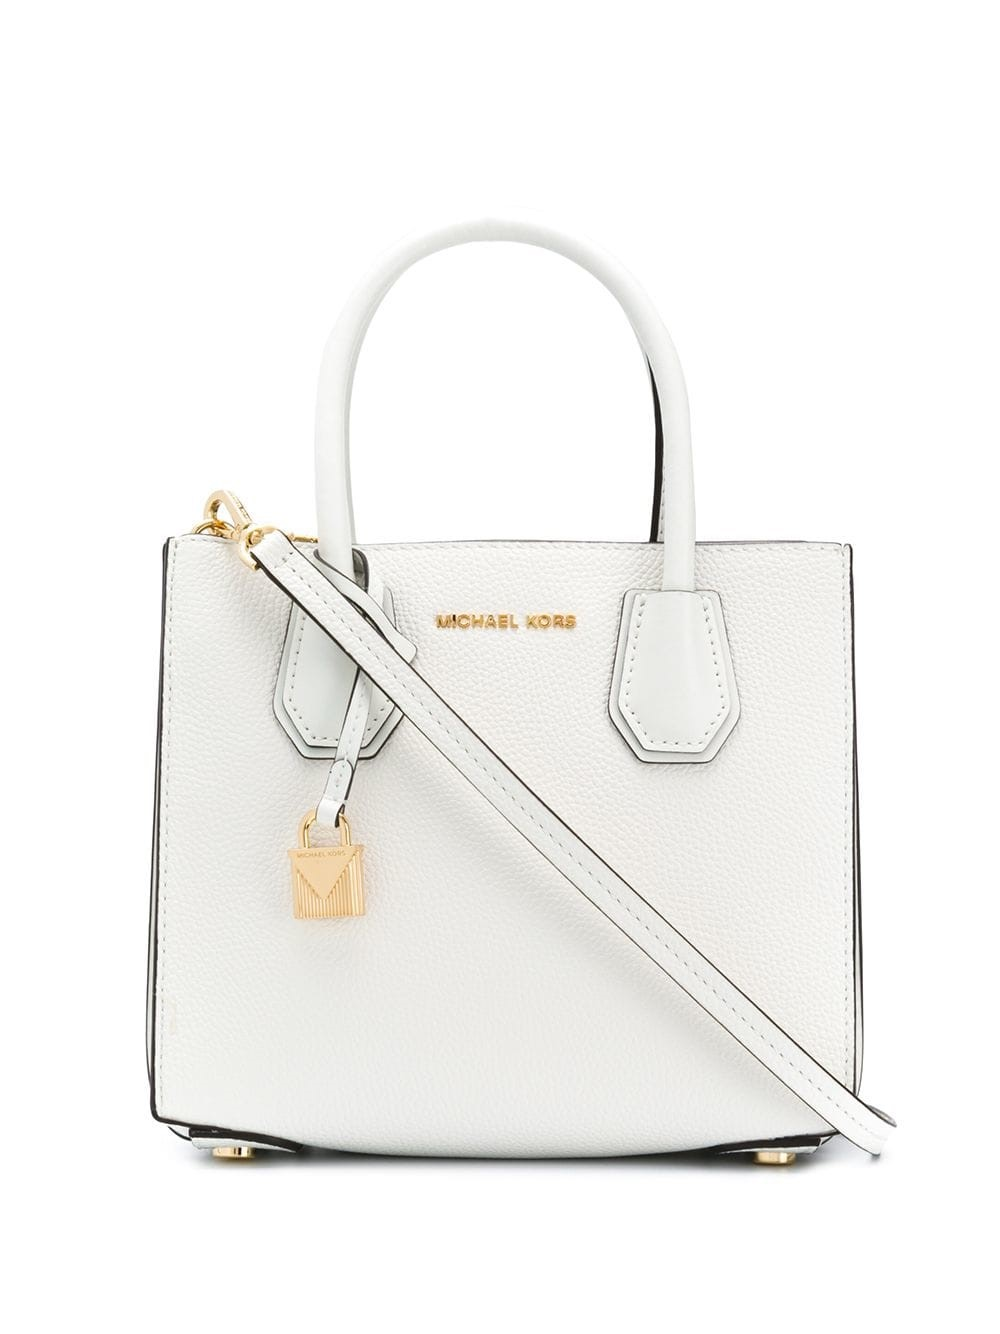 5f8239231abfe michael kors mk TOTE BAG WITH LOGO available on montiboutique.com ...